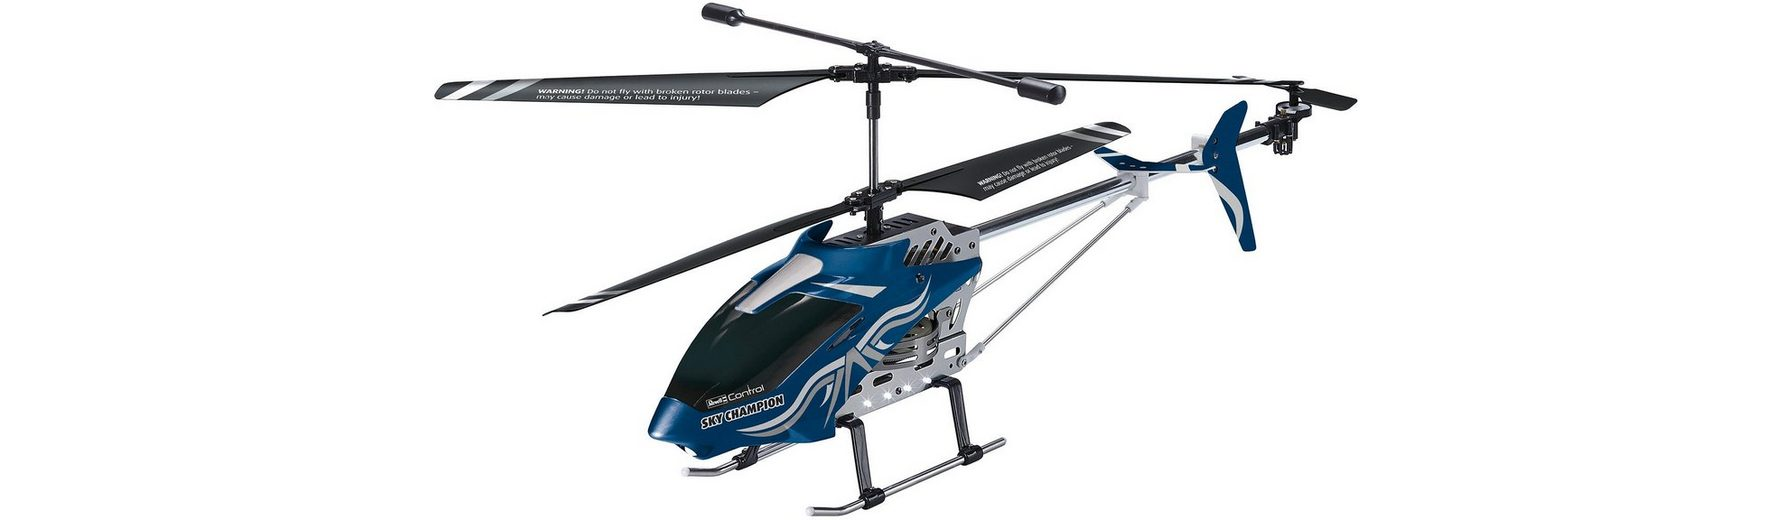 Revell® Control, Großmodell RC Helicopter, »Sky Champion«